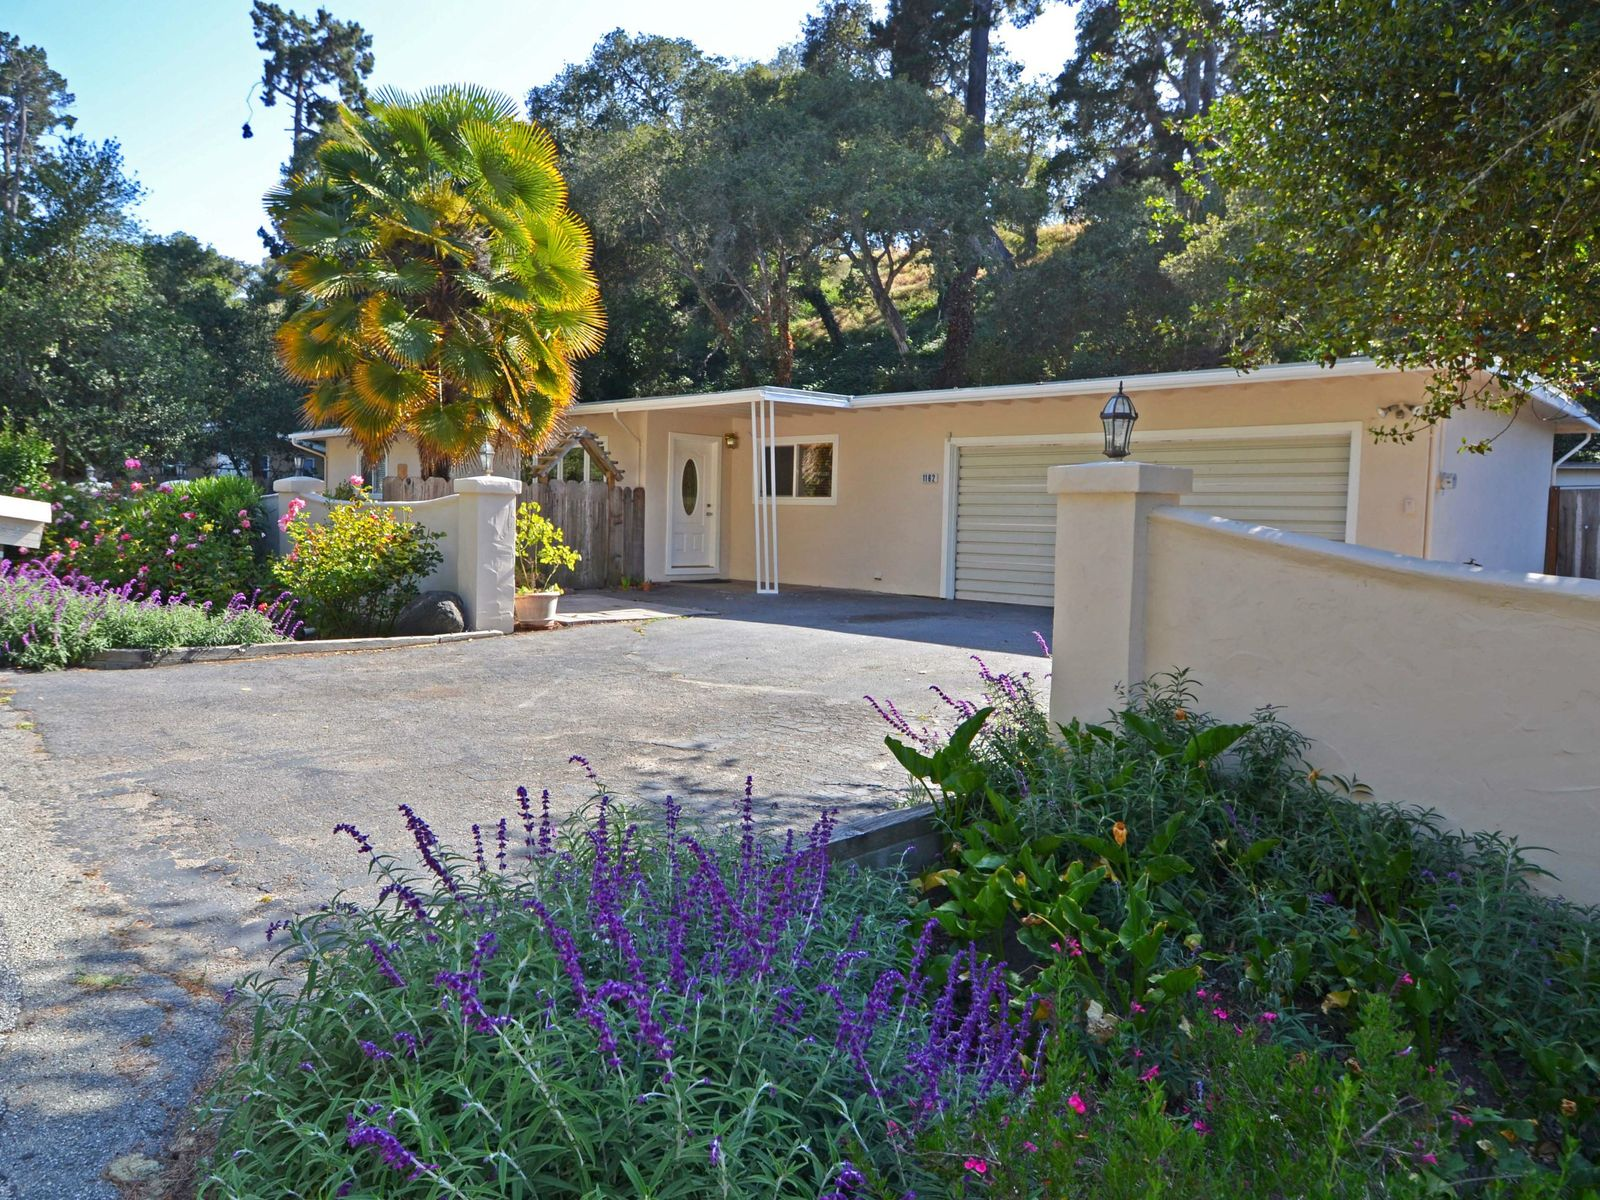 Cozy Home on a Big Lot, Monterey CA Single Family Home - Monterey Real Estate